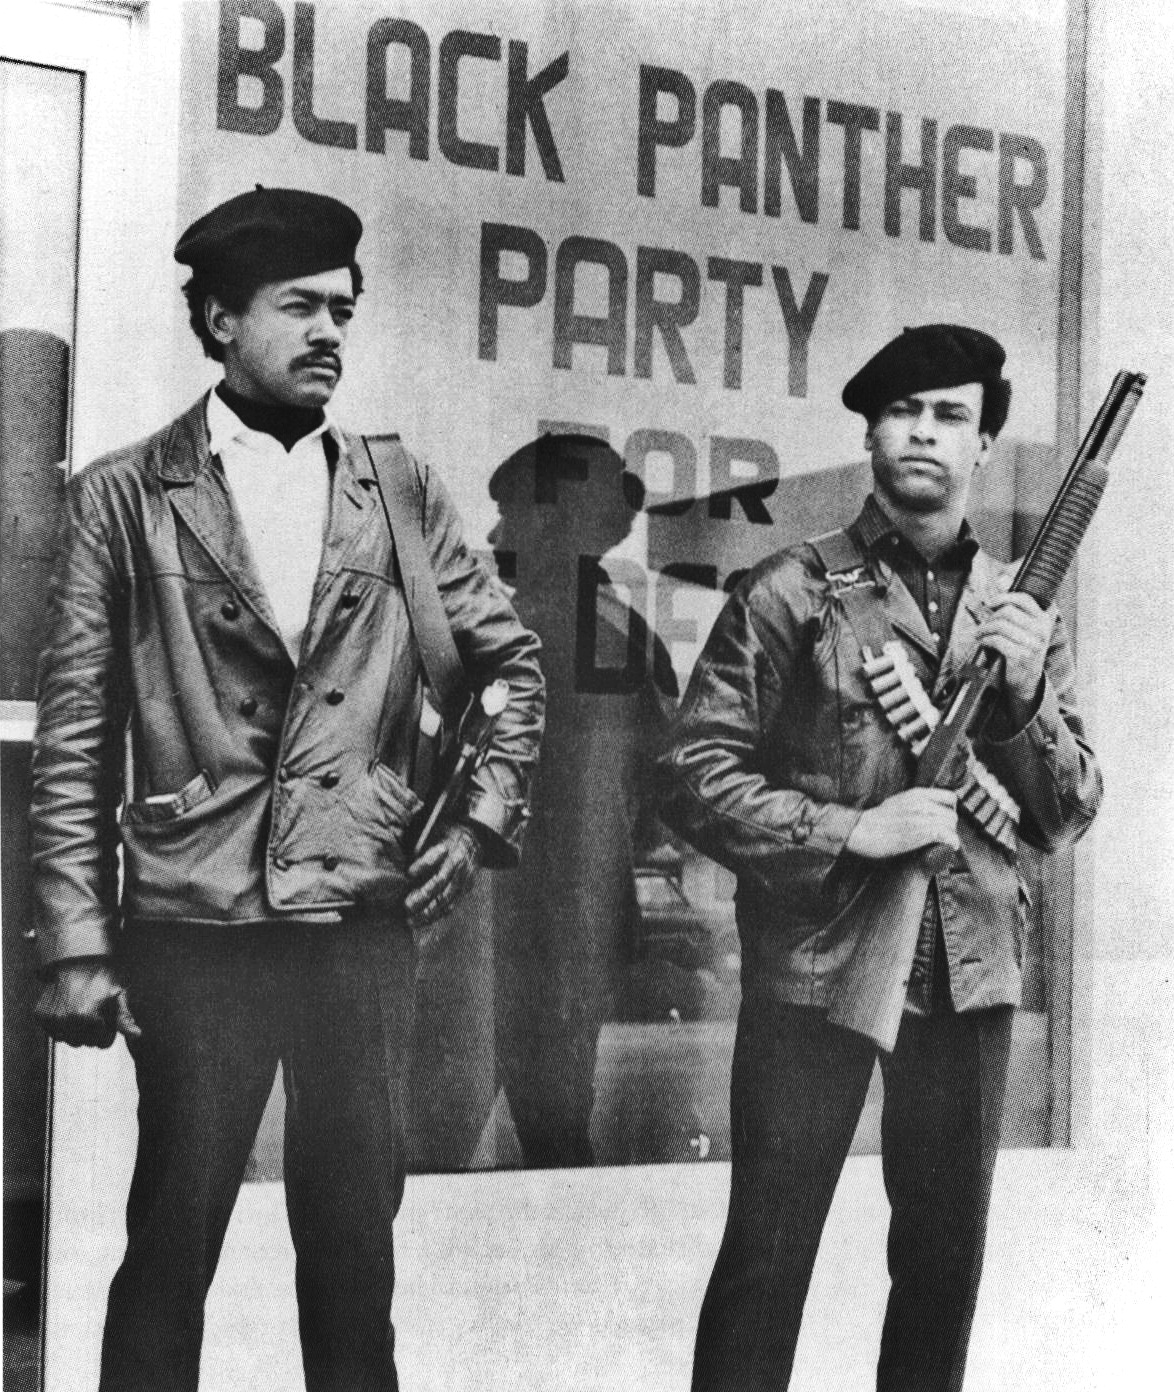 huey p newton thesis Huey newton was born in monroe, louisiana in 1942, and would become one of the most influential black movement leaders of his time huey's family moved to oakland, california while he was still young, and despite frequent run-ins with law enforcement as a teenager, huey would eventually graduate from high school.